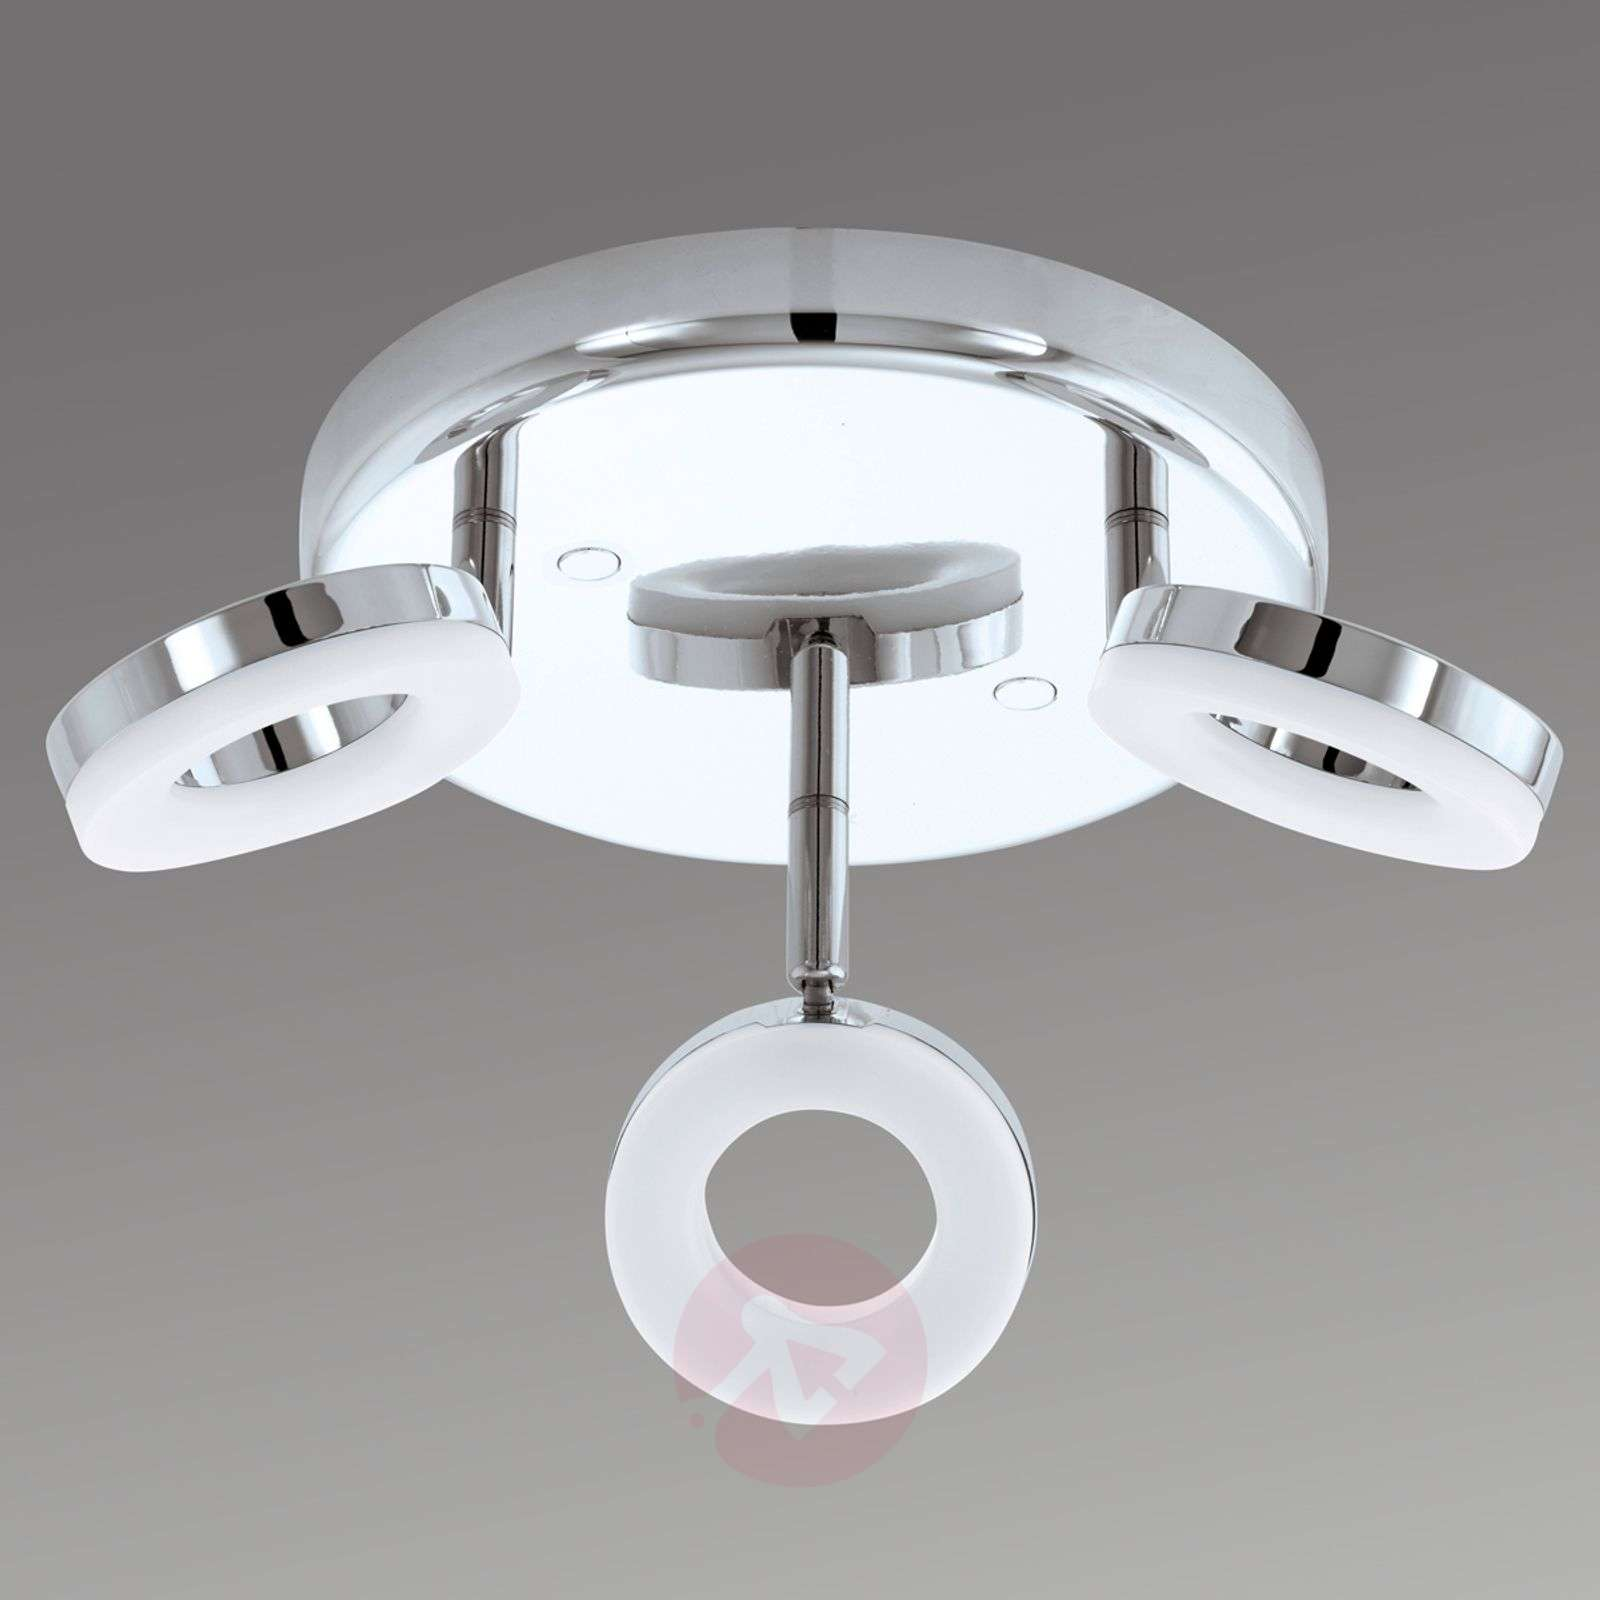 Gonaro 3-light circ. ceiling spotlight with LEDs-3031849-01